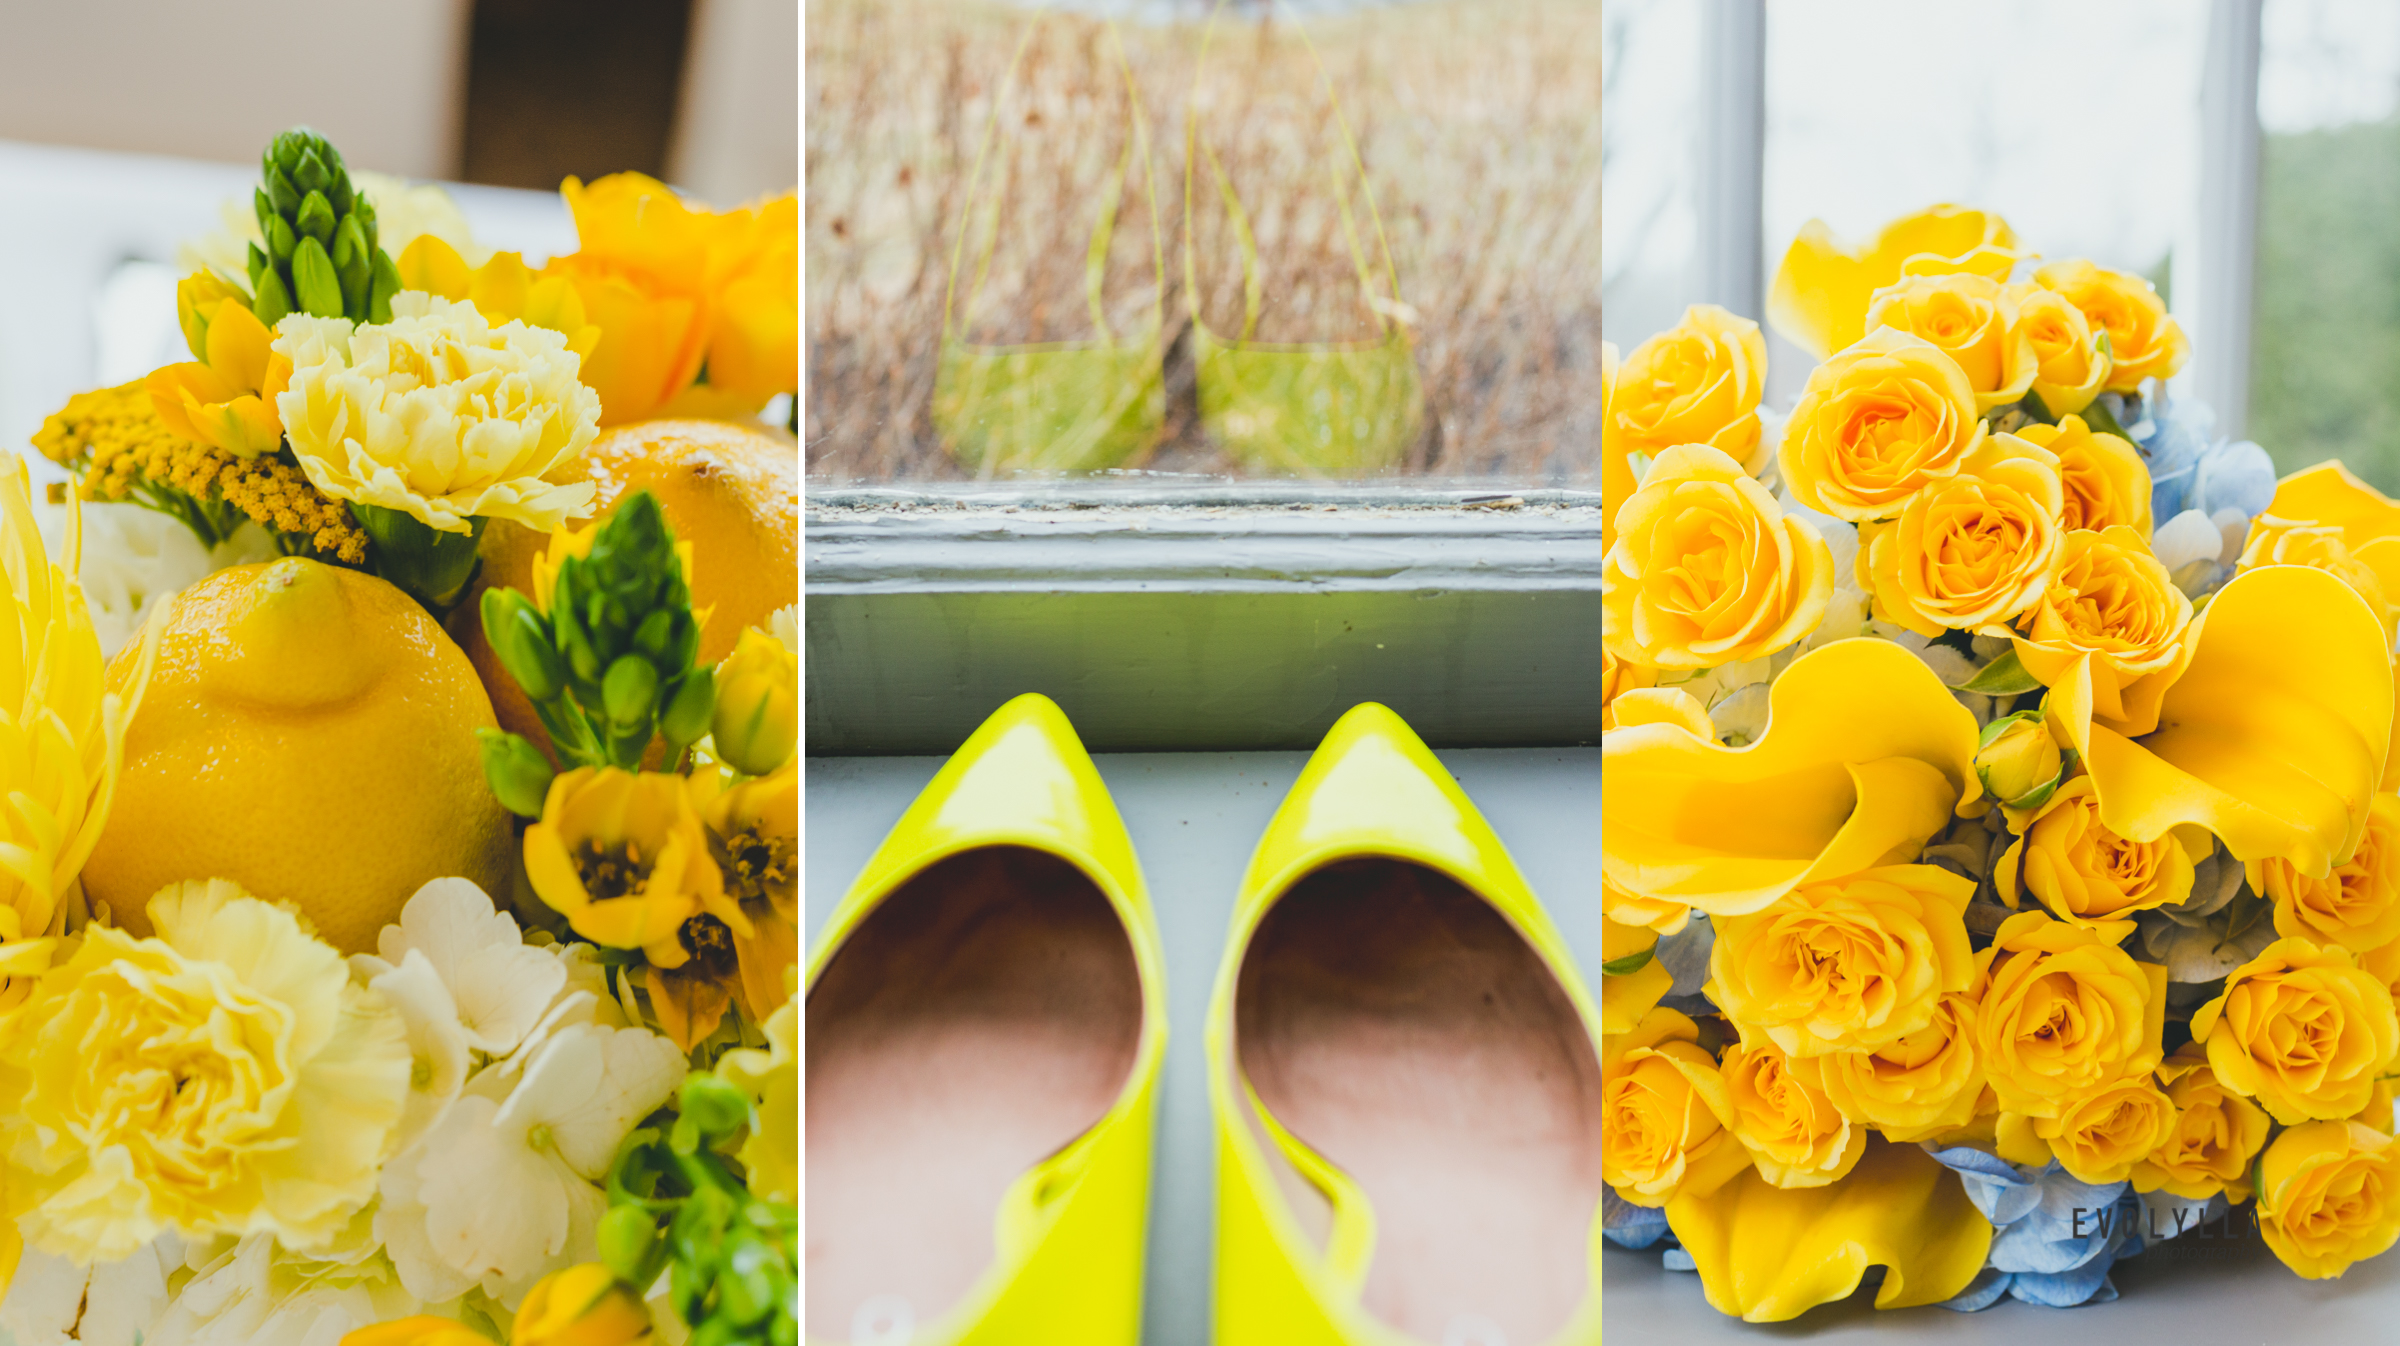 Lemon Party Wedding Theme Idea for Bright and Happy Bride